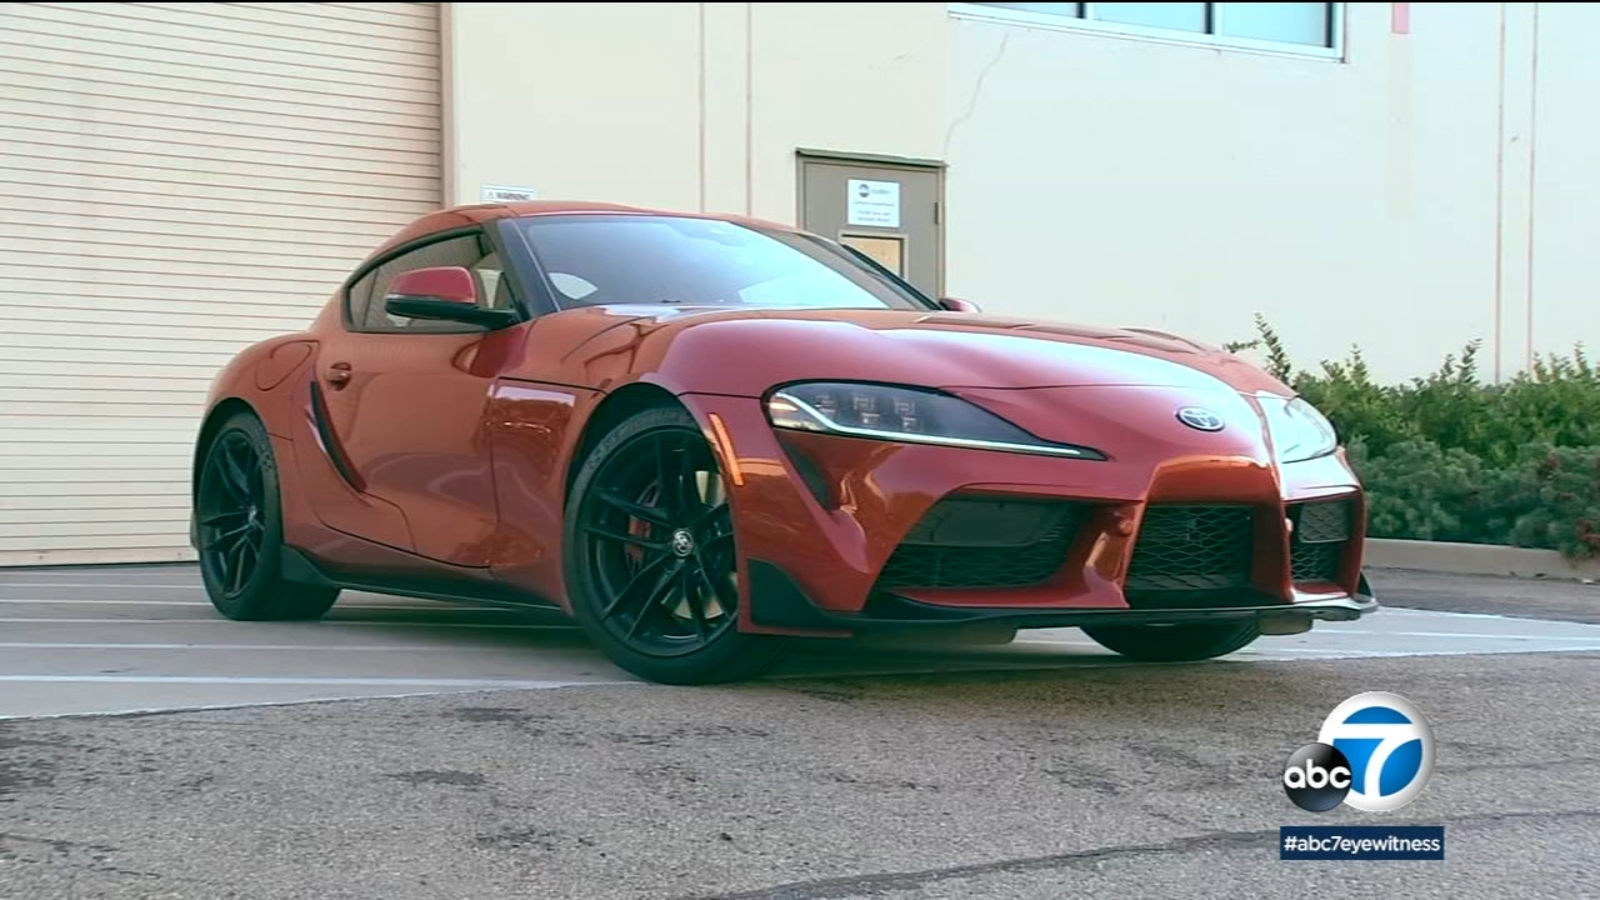 Toyota Supra returns after 22-year absence